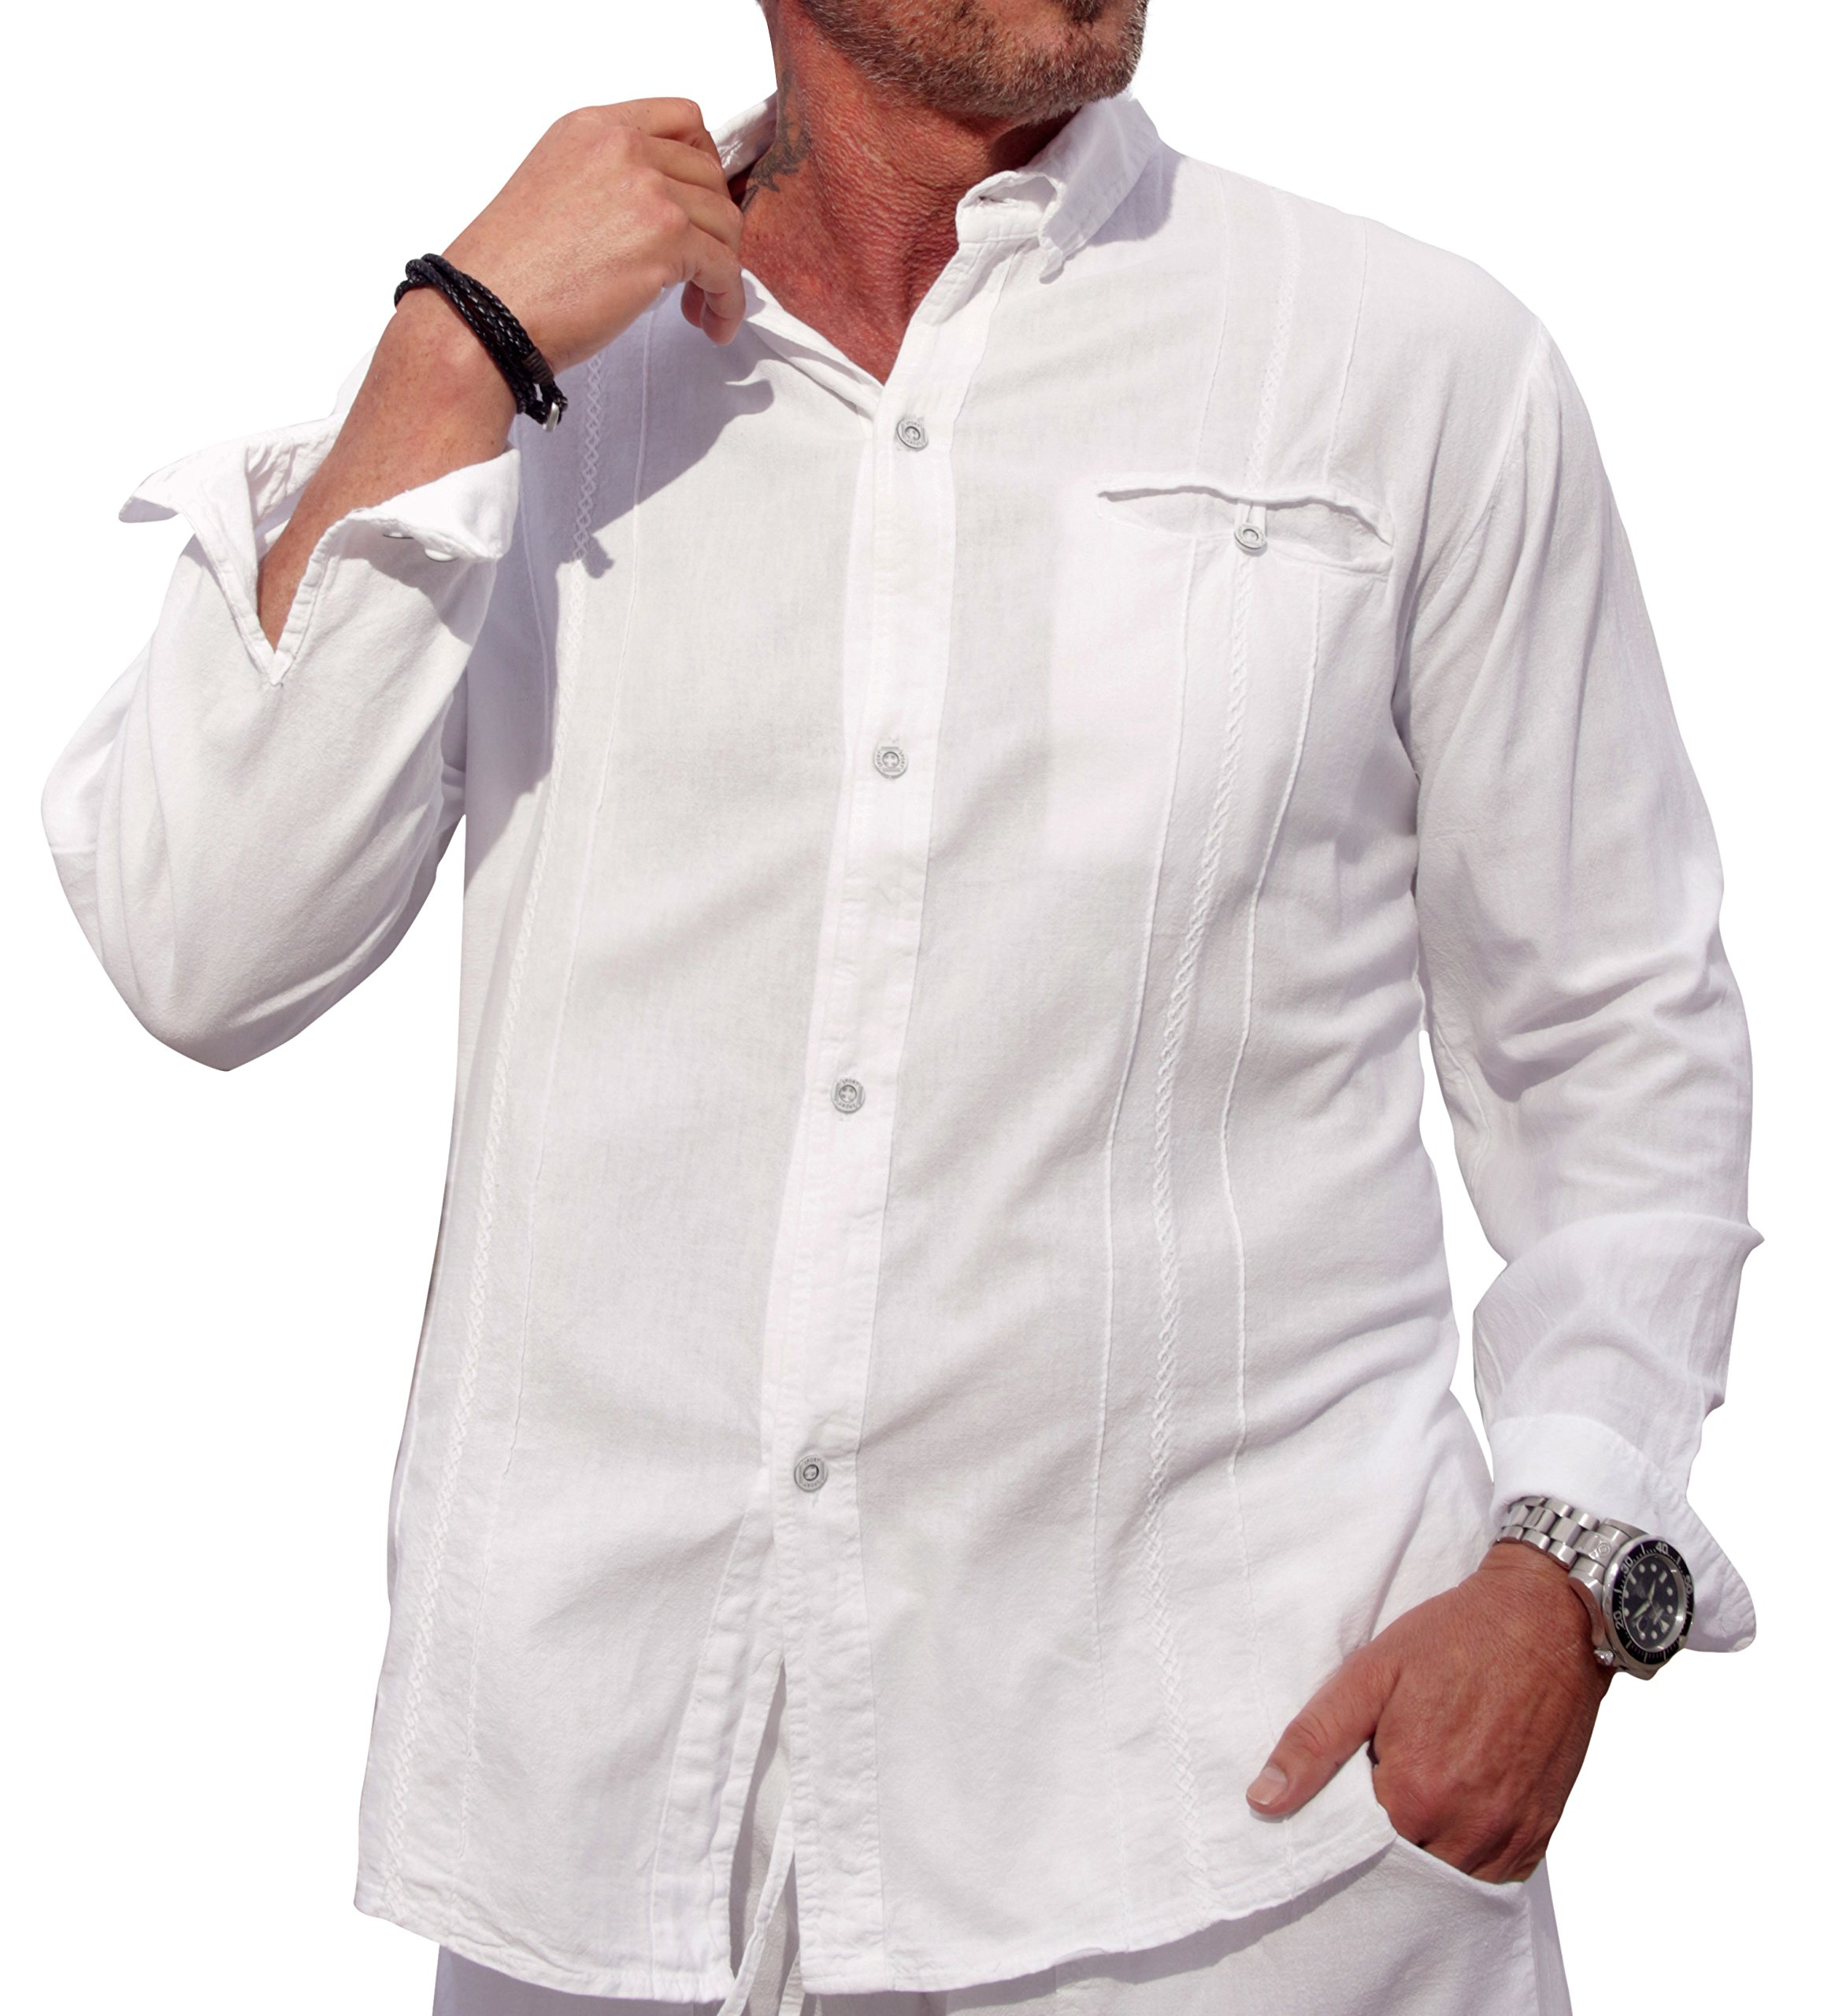 M&B USA Cotton White Long-Sleeve Button Loop Closure Pocket Organic Embroidered Button Down Shirt (XX-Large, White) by M&B USA (Image #3)